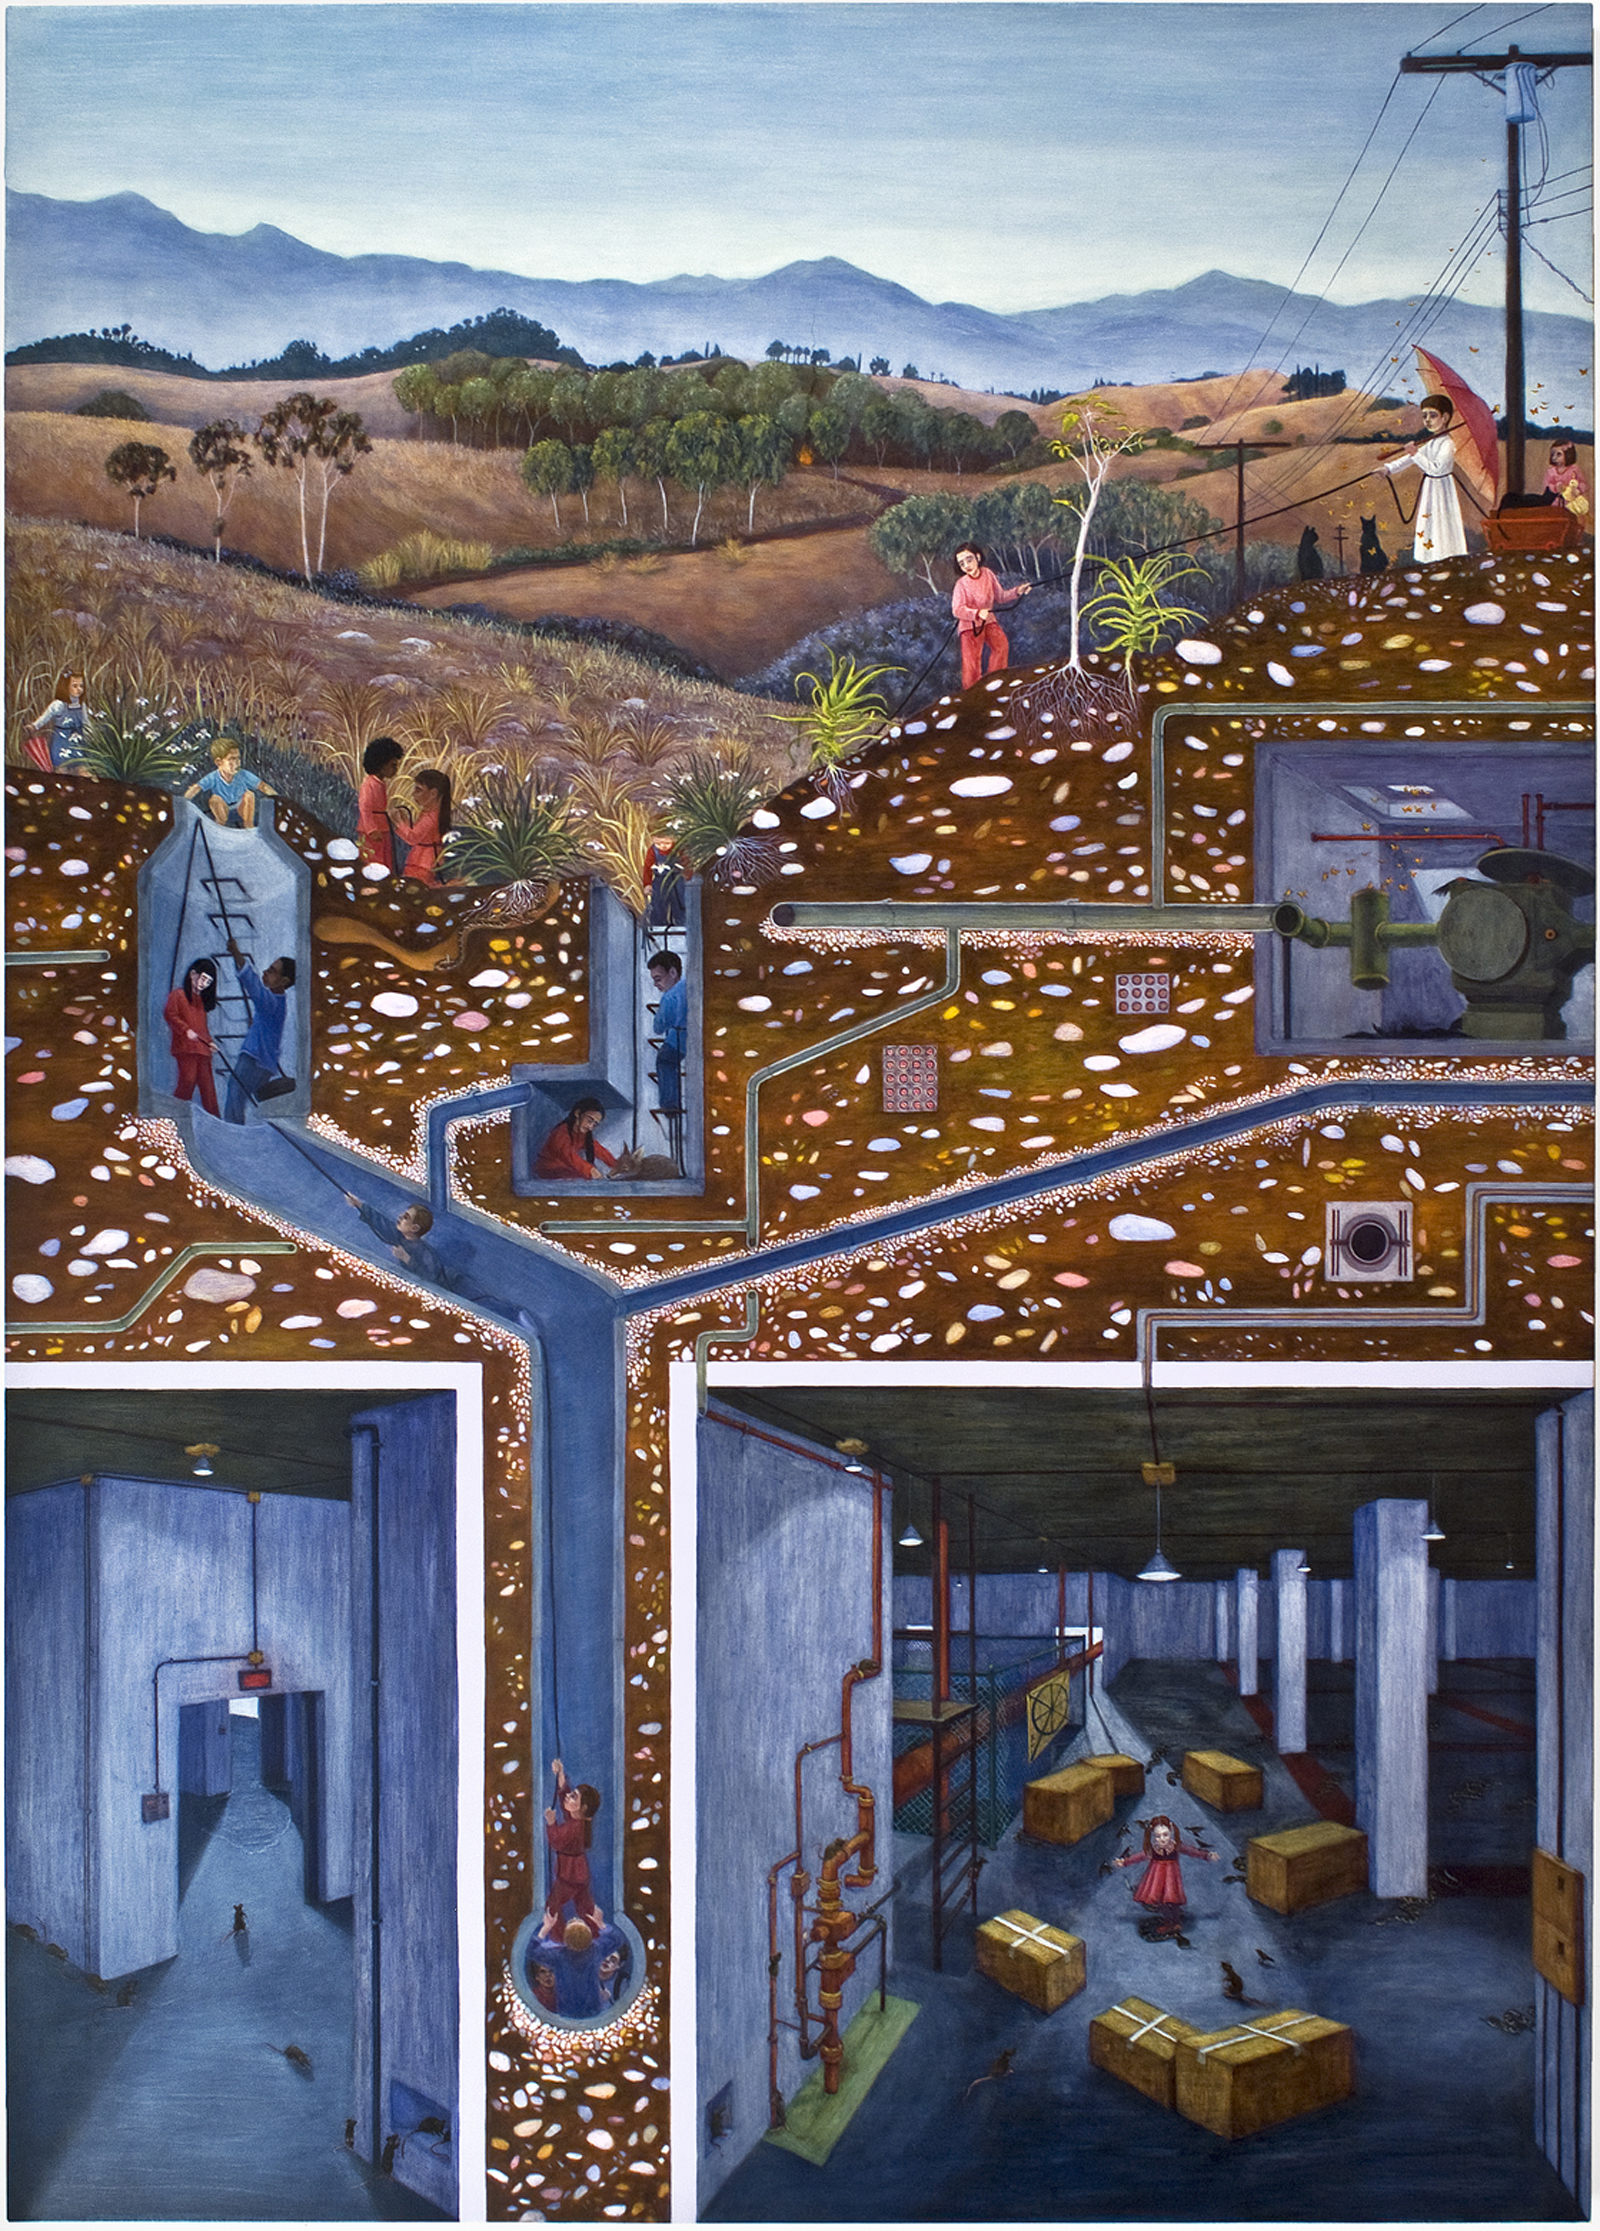 """System Failure: Gas, 84"""" x 60.25"""", oil on canvas/panel, 2009"""